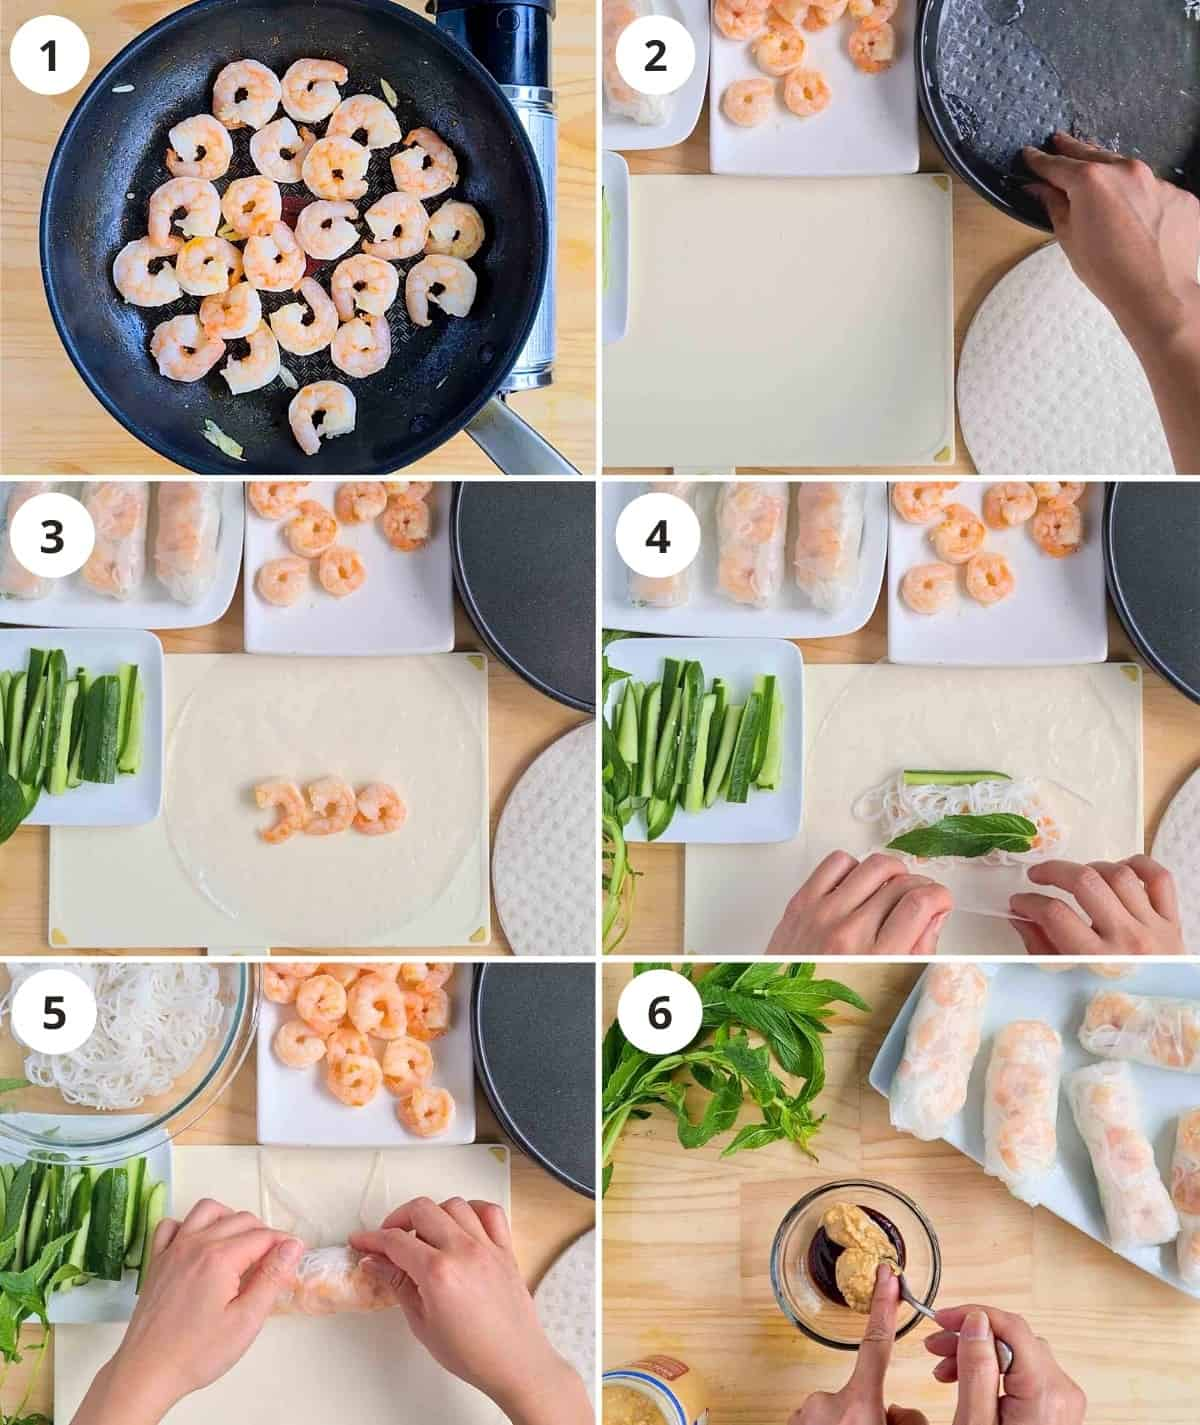 Step by step snap shot instructions